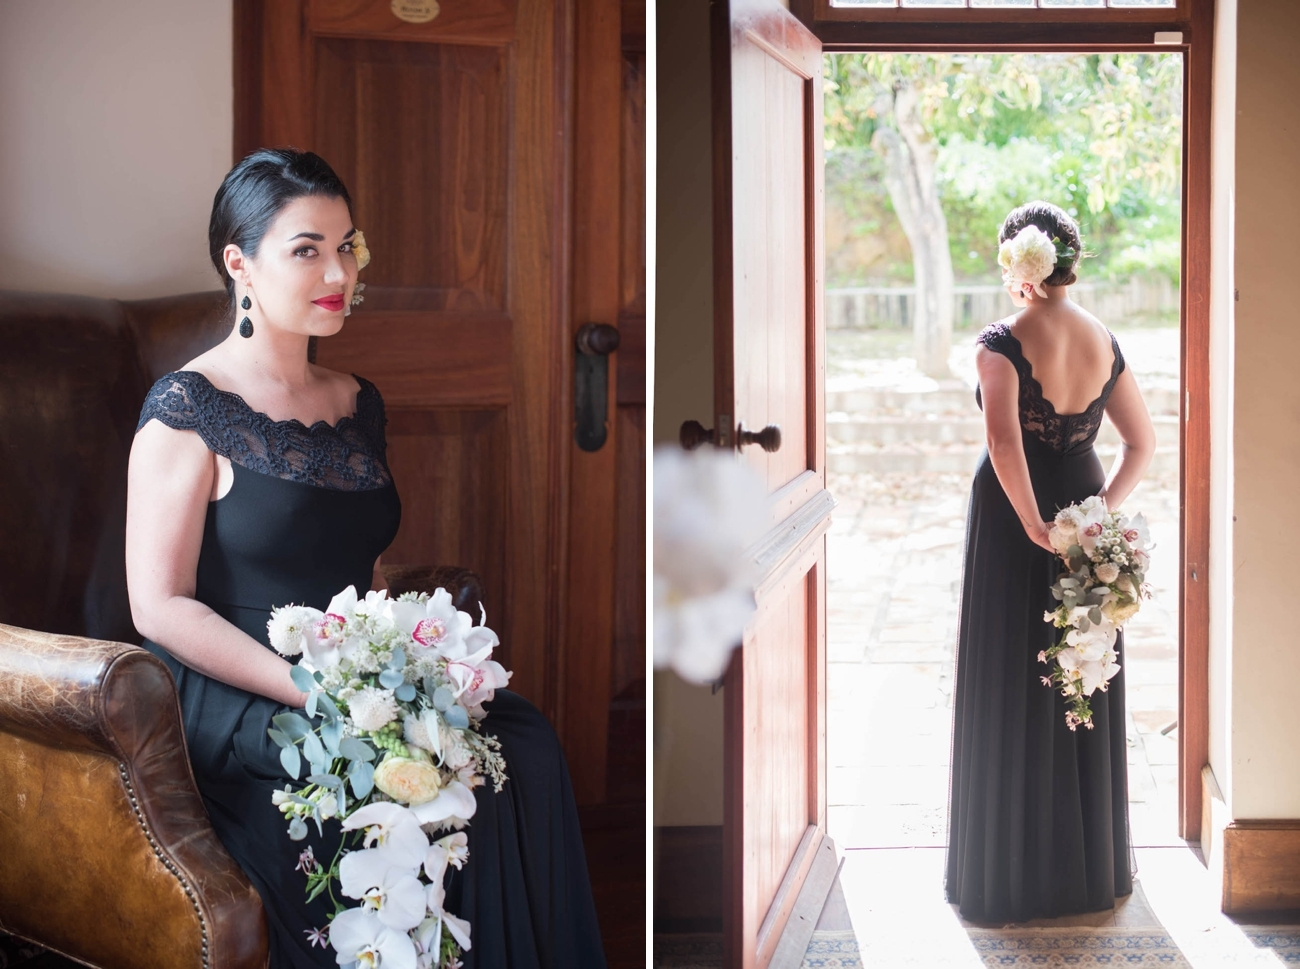 Spanish Flamenco Wedding Inspiration | Credit: Jacoba Clothing/Forever September